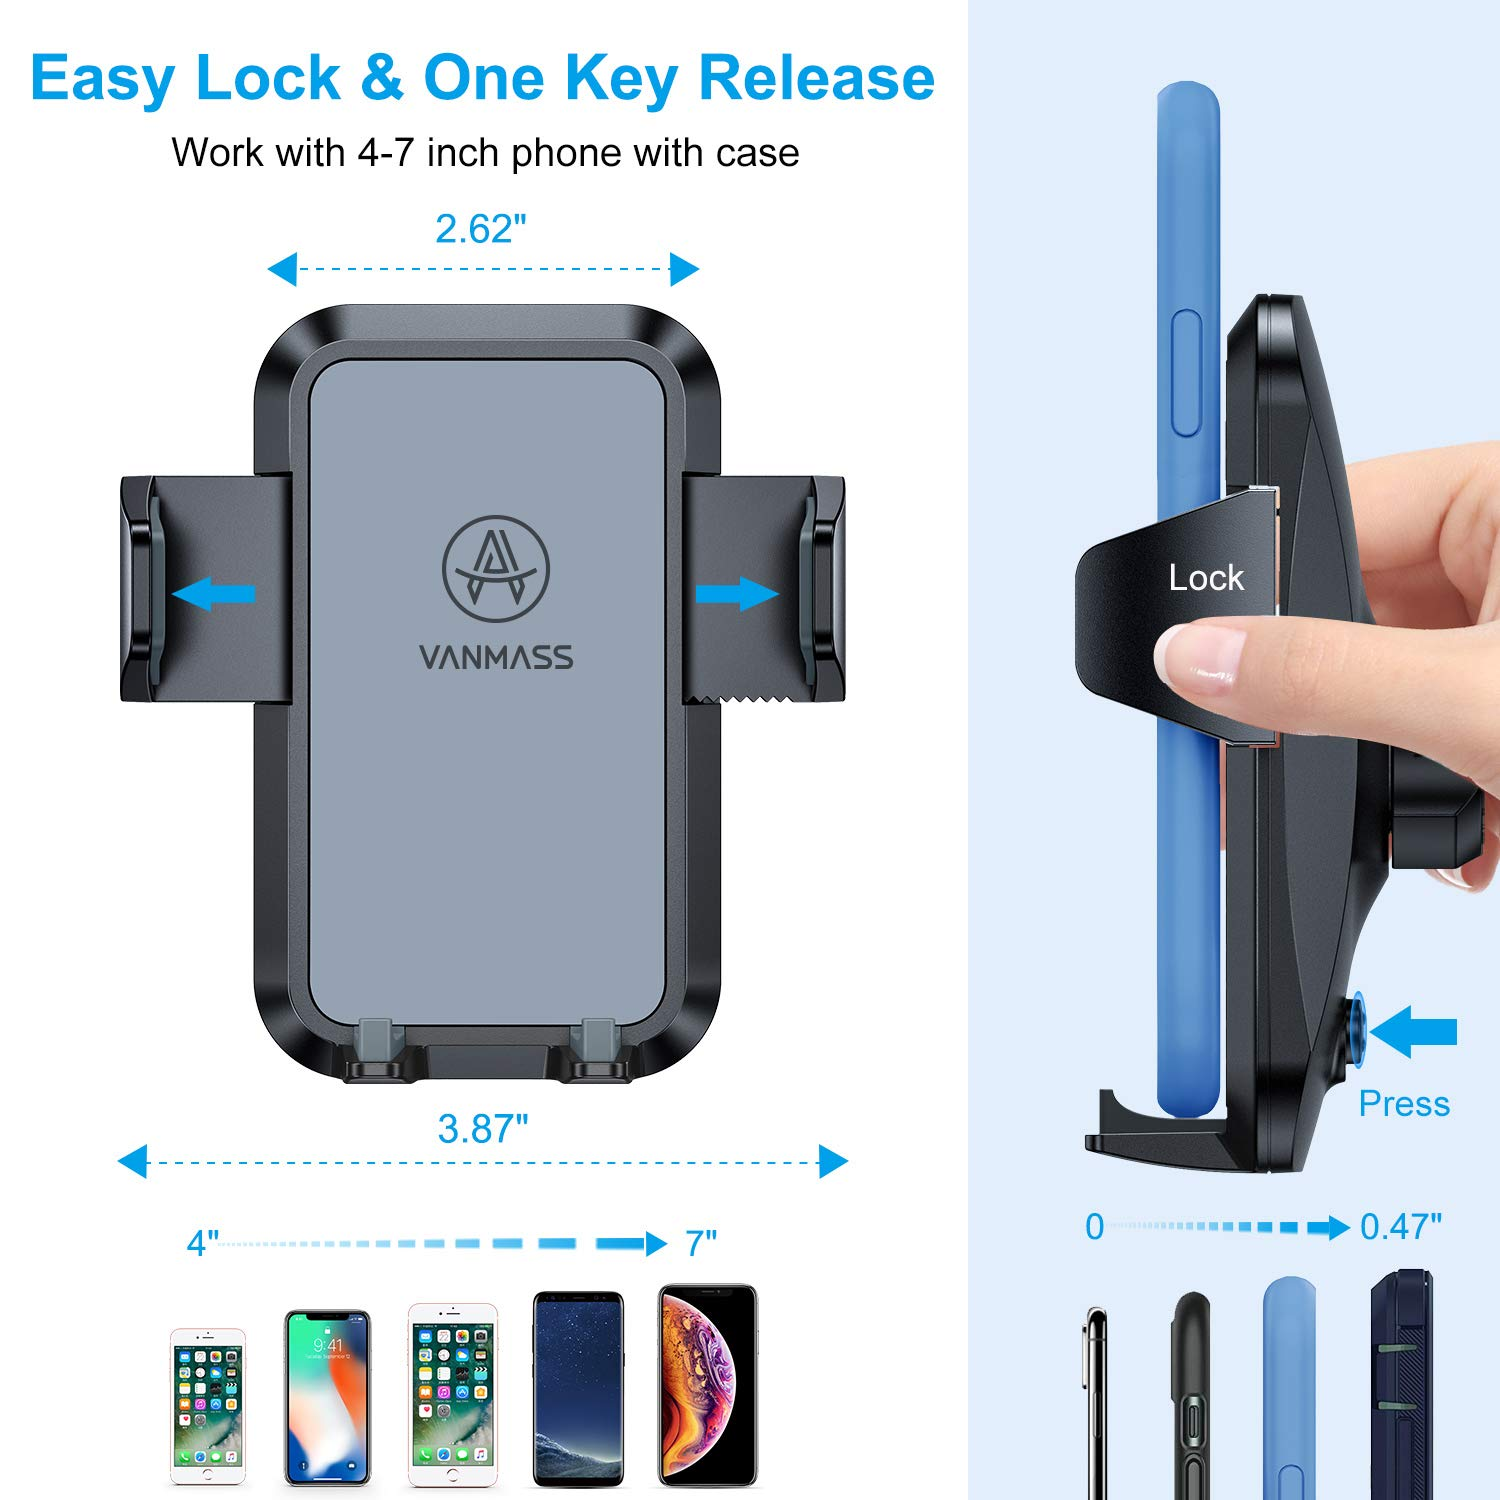 Universal Air Vent Phone Holder for Car Fully Adjustable Vent Clip Compatible iPhone 11 Pro XR Xs Max X 8 Galaxy S10 S9 S8 S7 Google Etc Protective Rubber Materials VANMASS Car Phone Mount